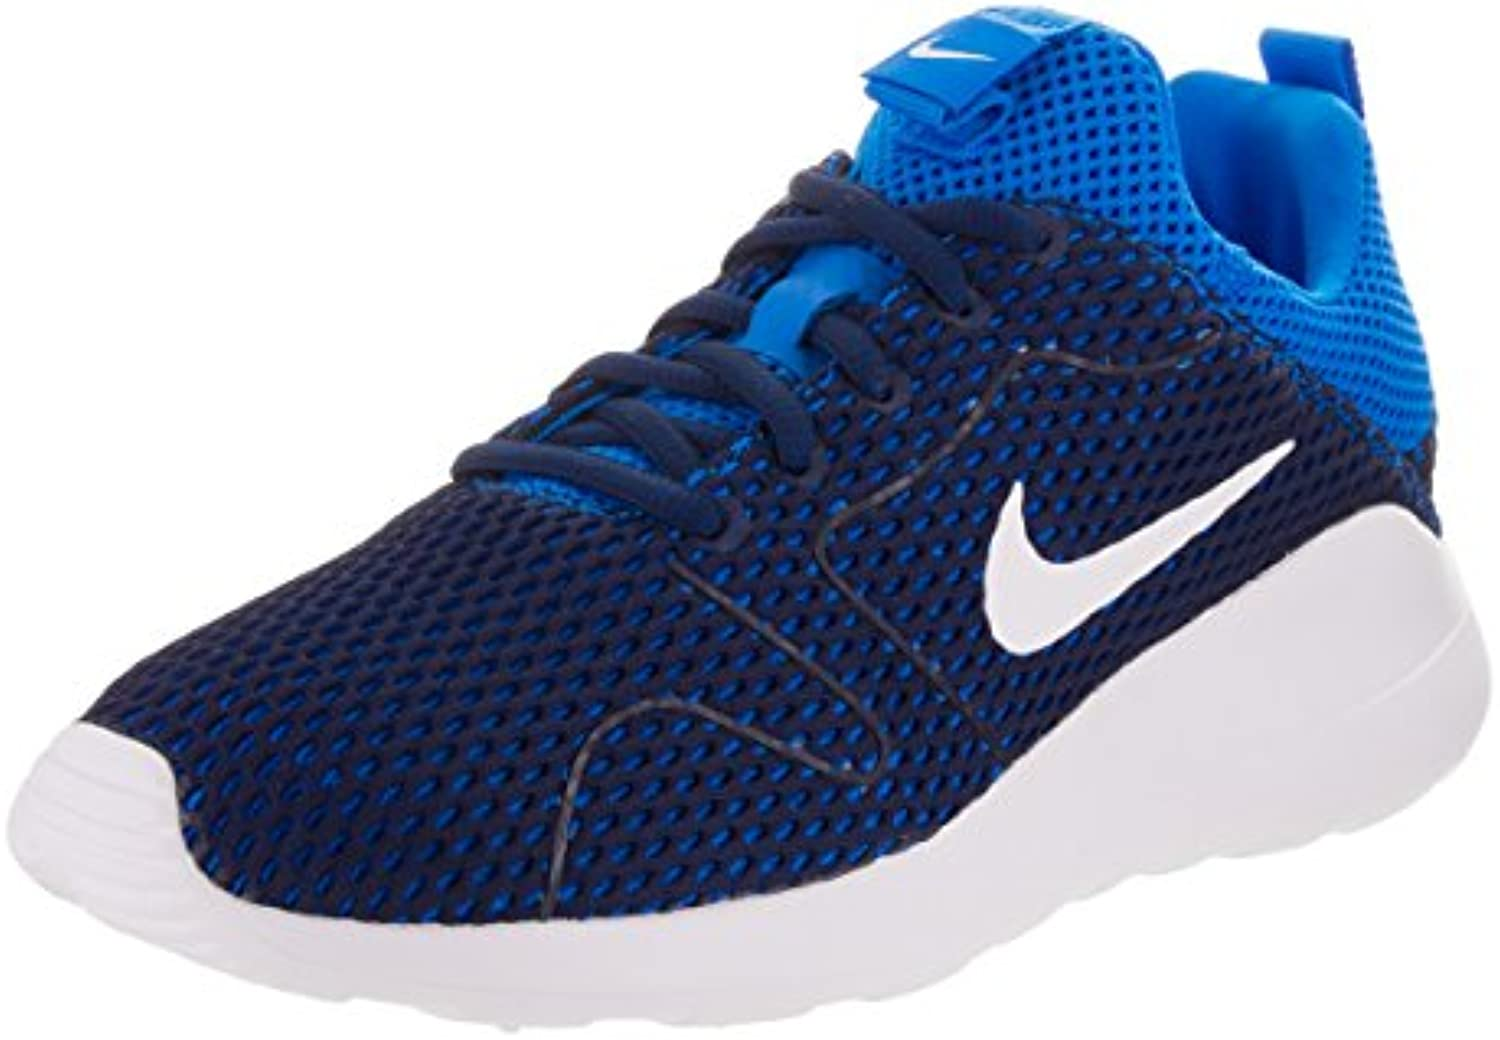 NIKE Men's Kaishi 2.0 SE Midnight Navy/White/Photo Blue Running Shoe 10.5 Men US